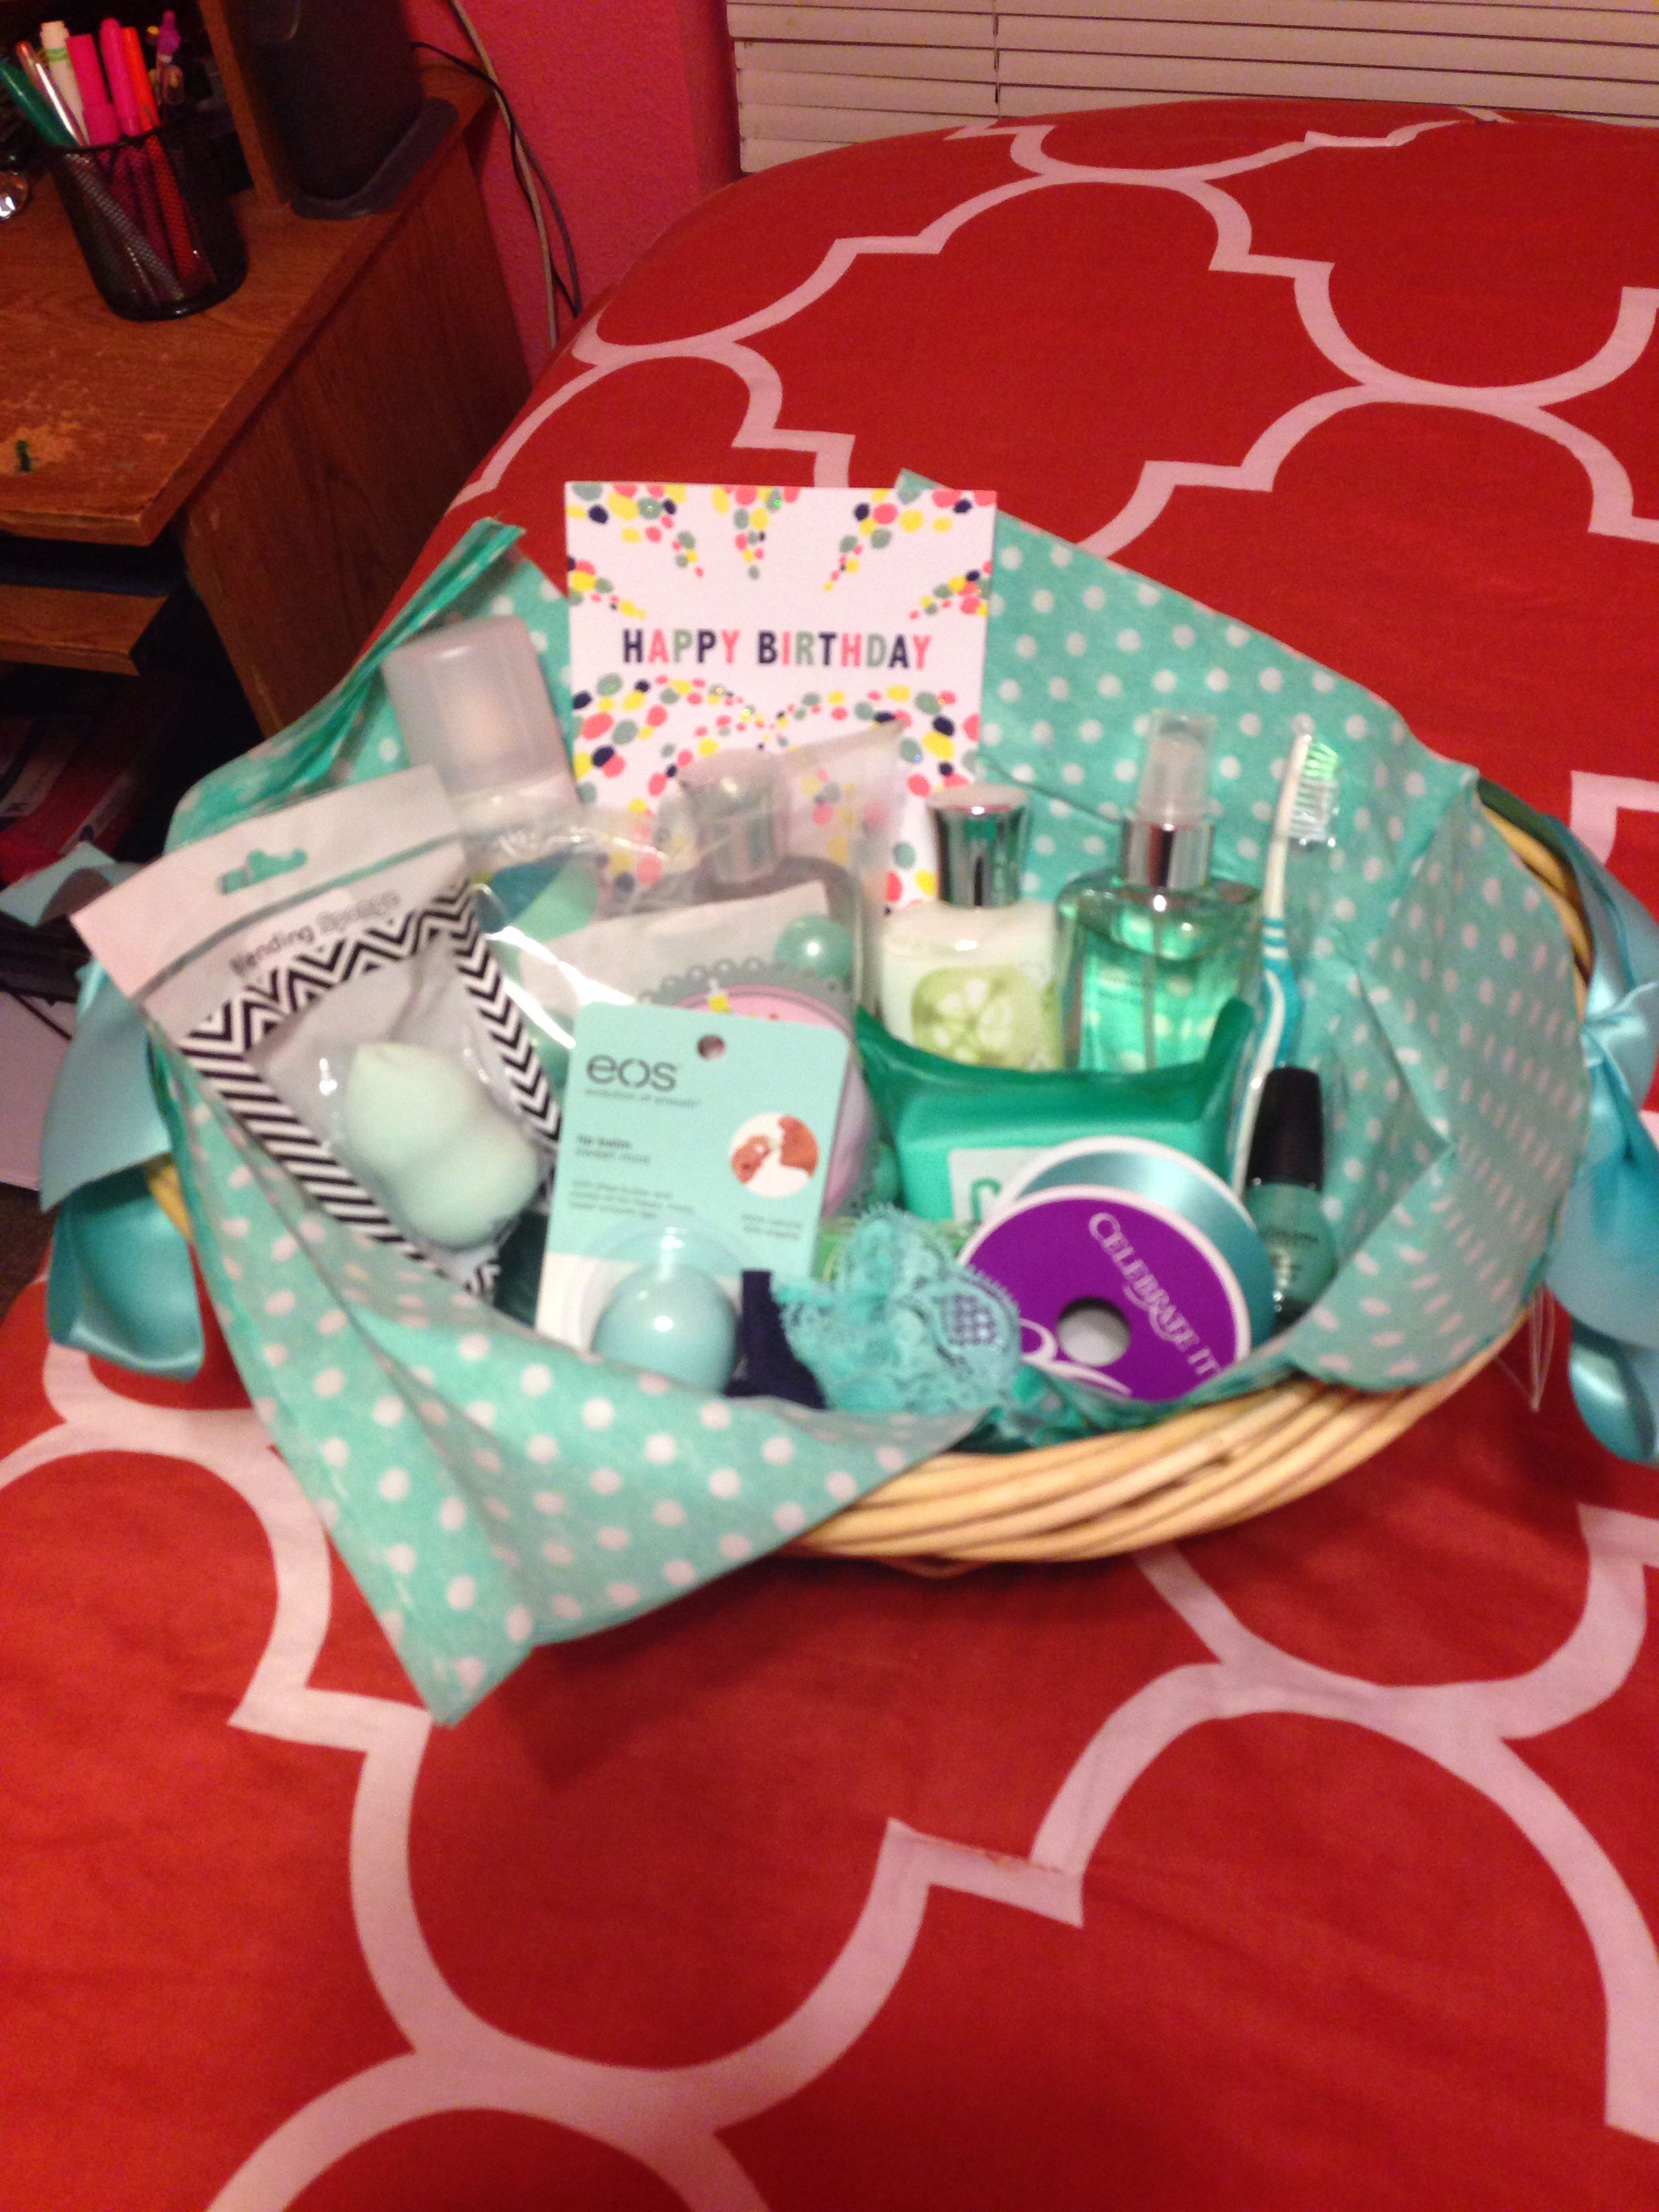 Color themed gift basket for a birthday themed gift